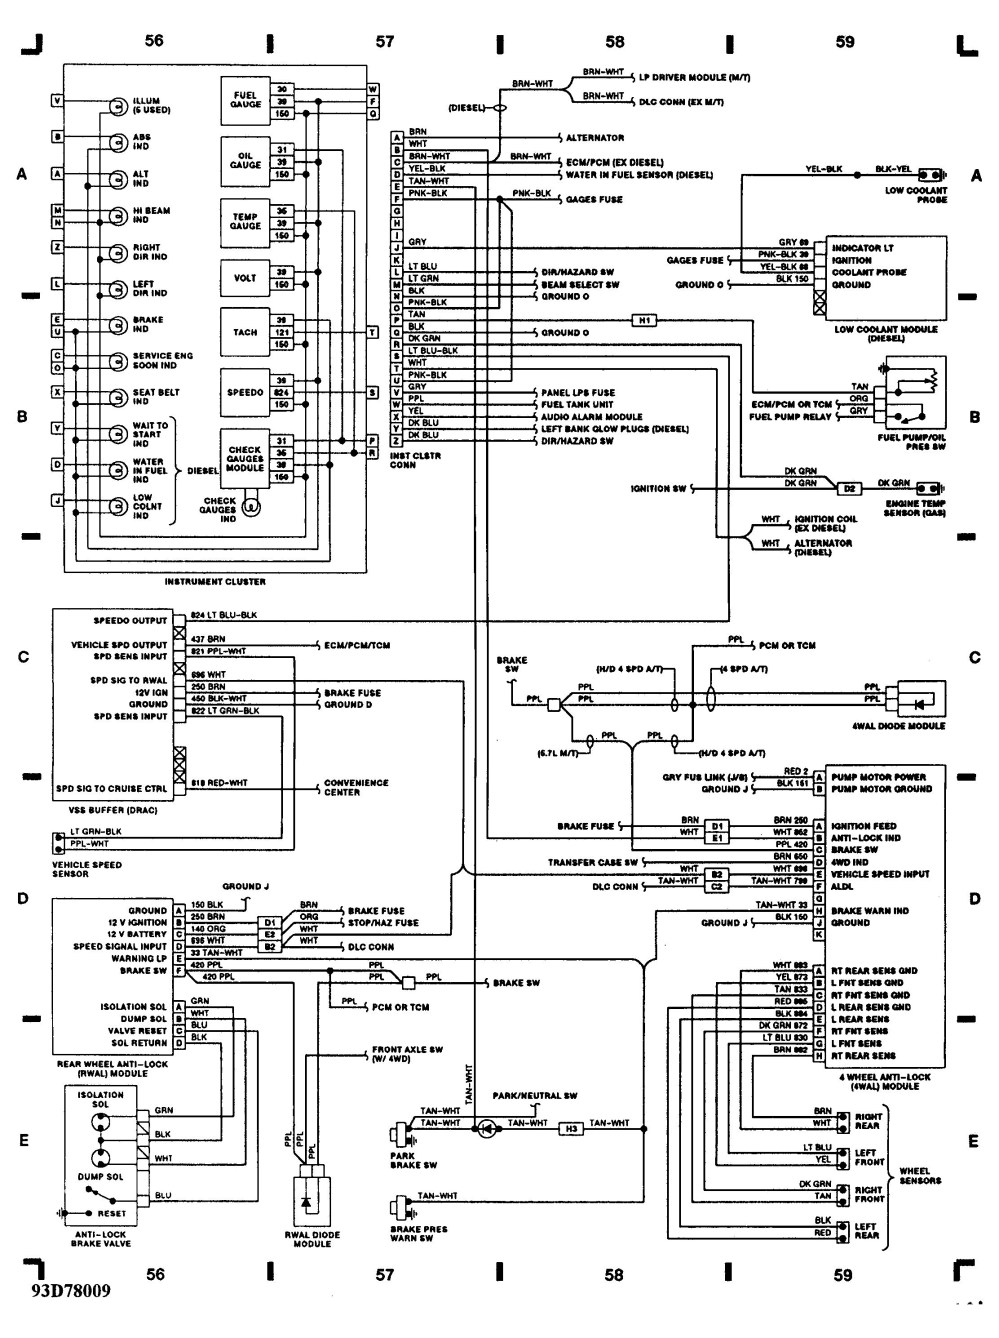 medium resolution of 1995 caprice wiring diagram schematic wiring diagrams u2022 rh arcomics co 2000 monte carlo engine diagram